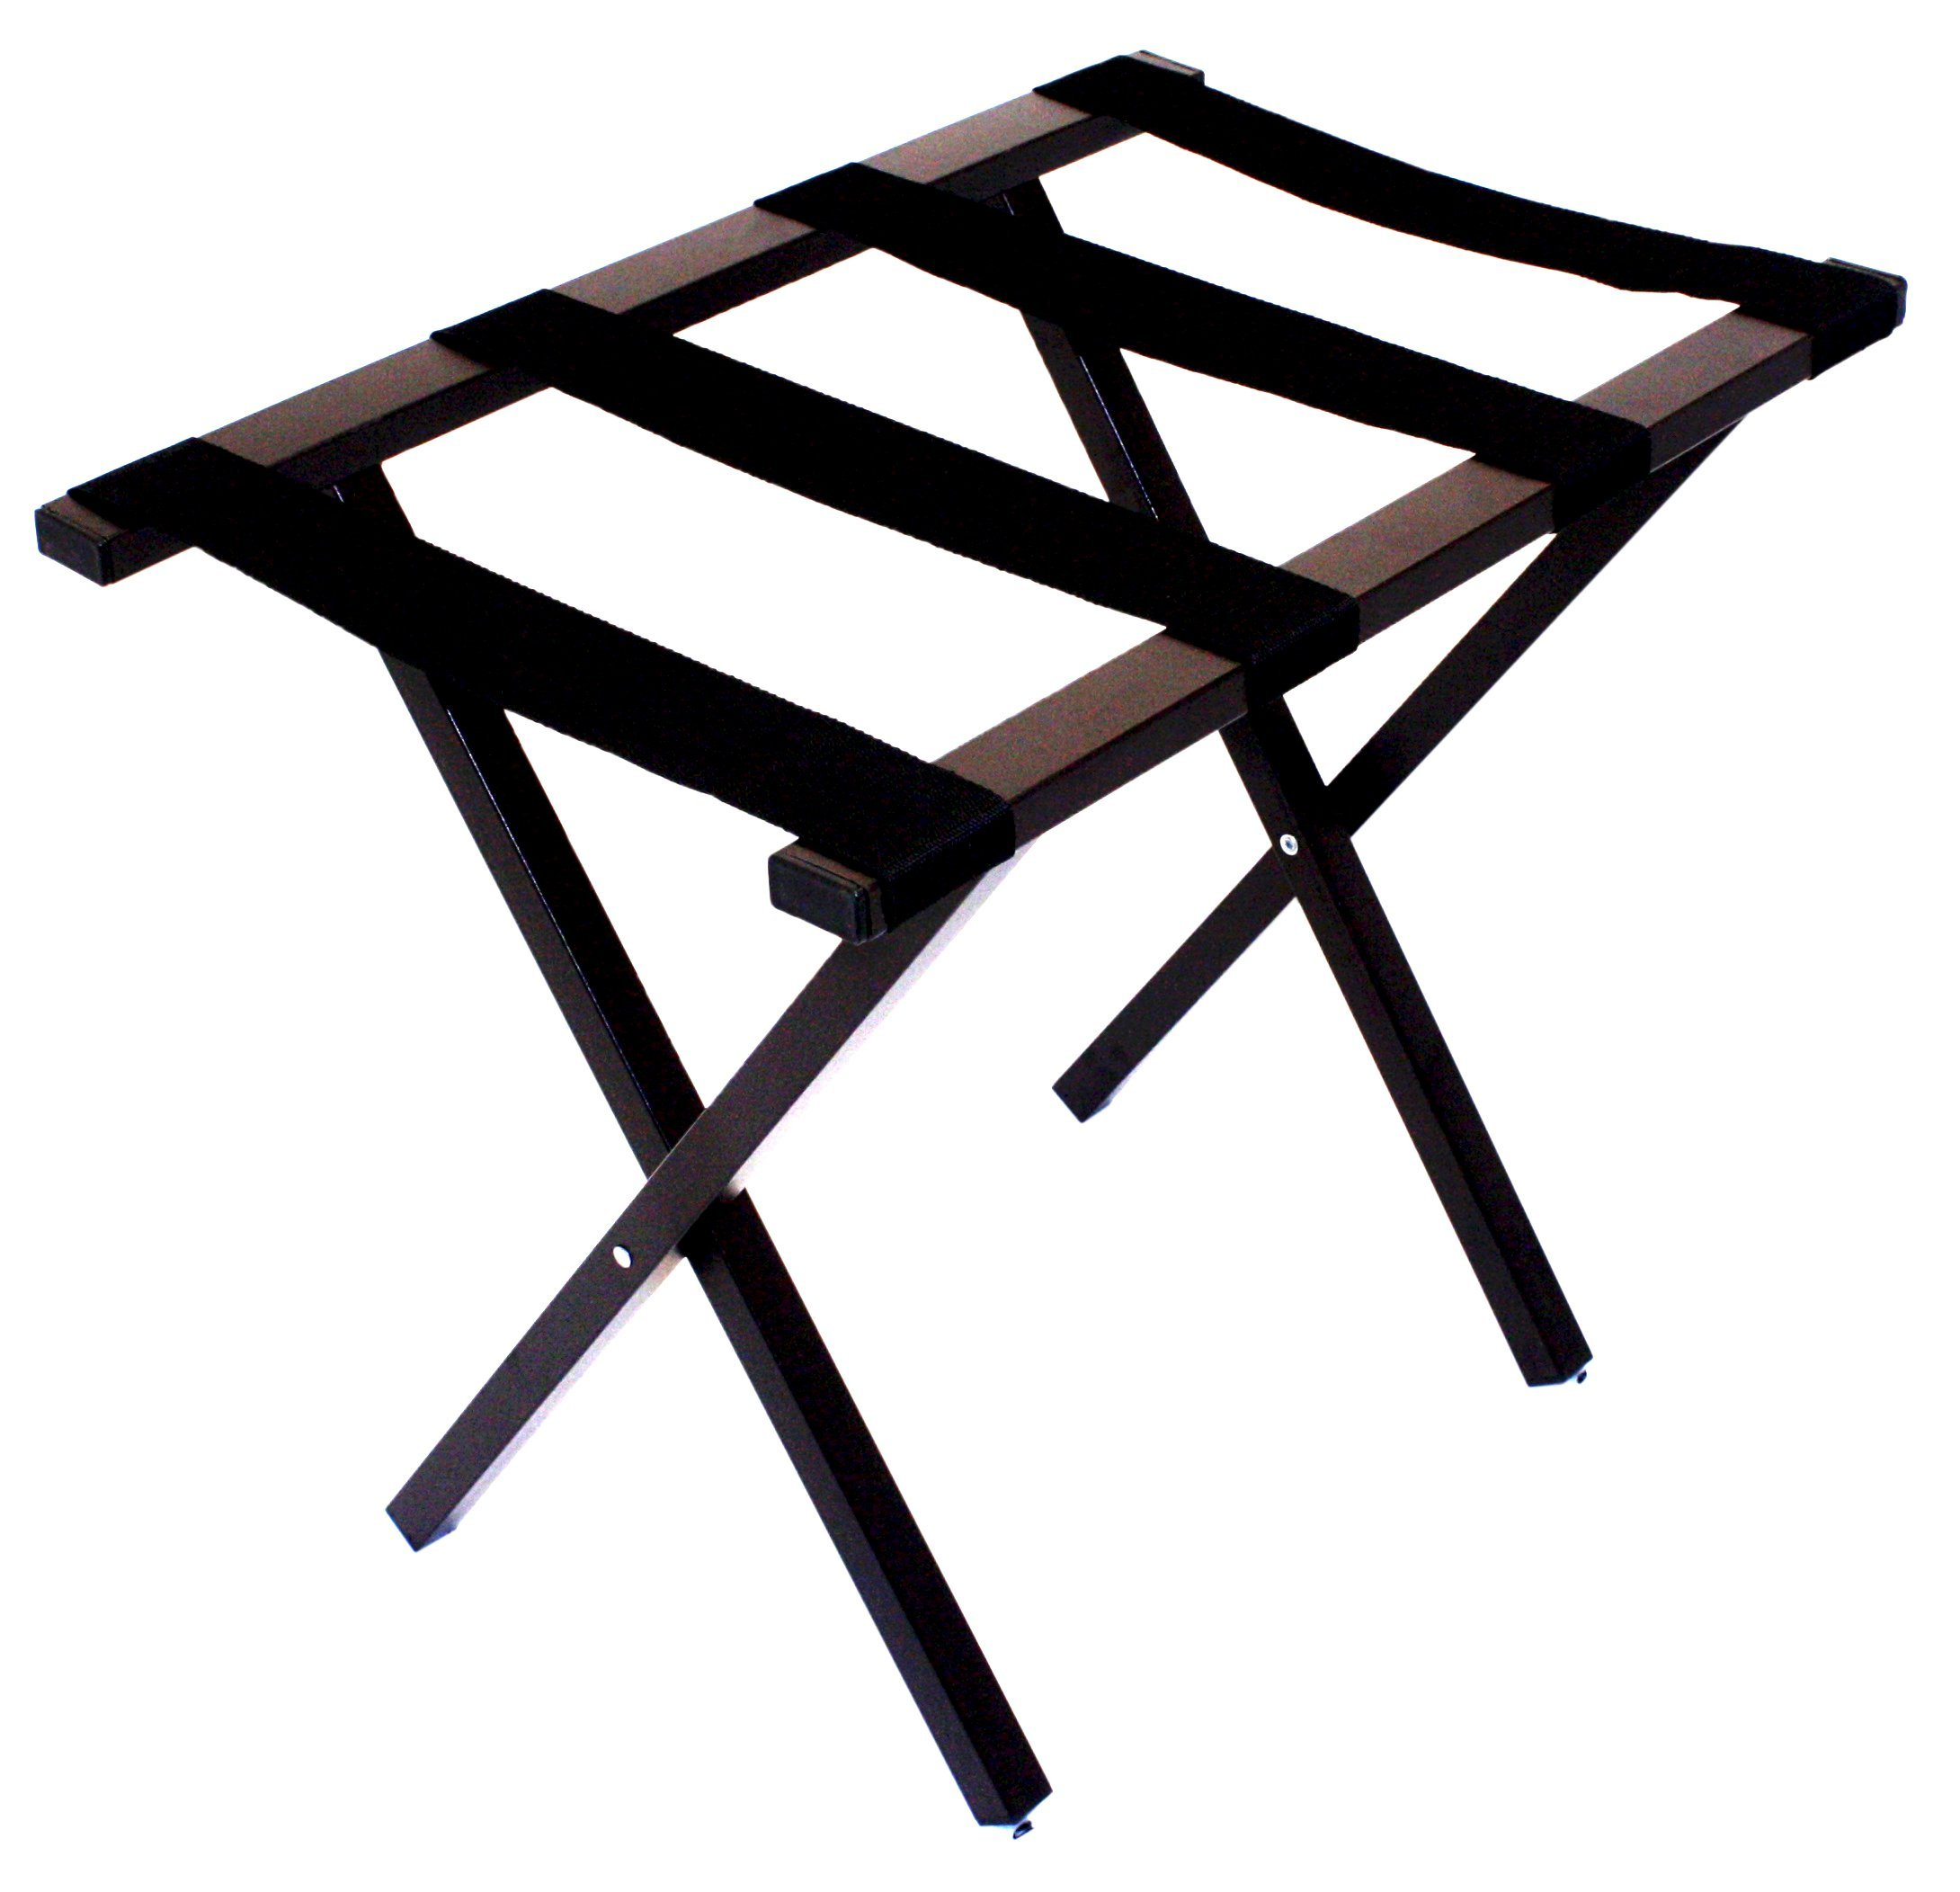 Wholesale Hotel Products Square Tube Metal Luggage Rack, Brown Finish